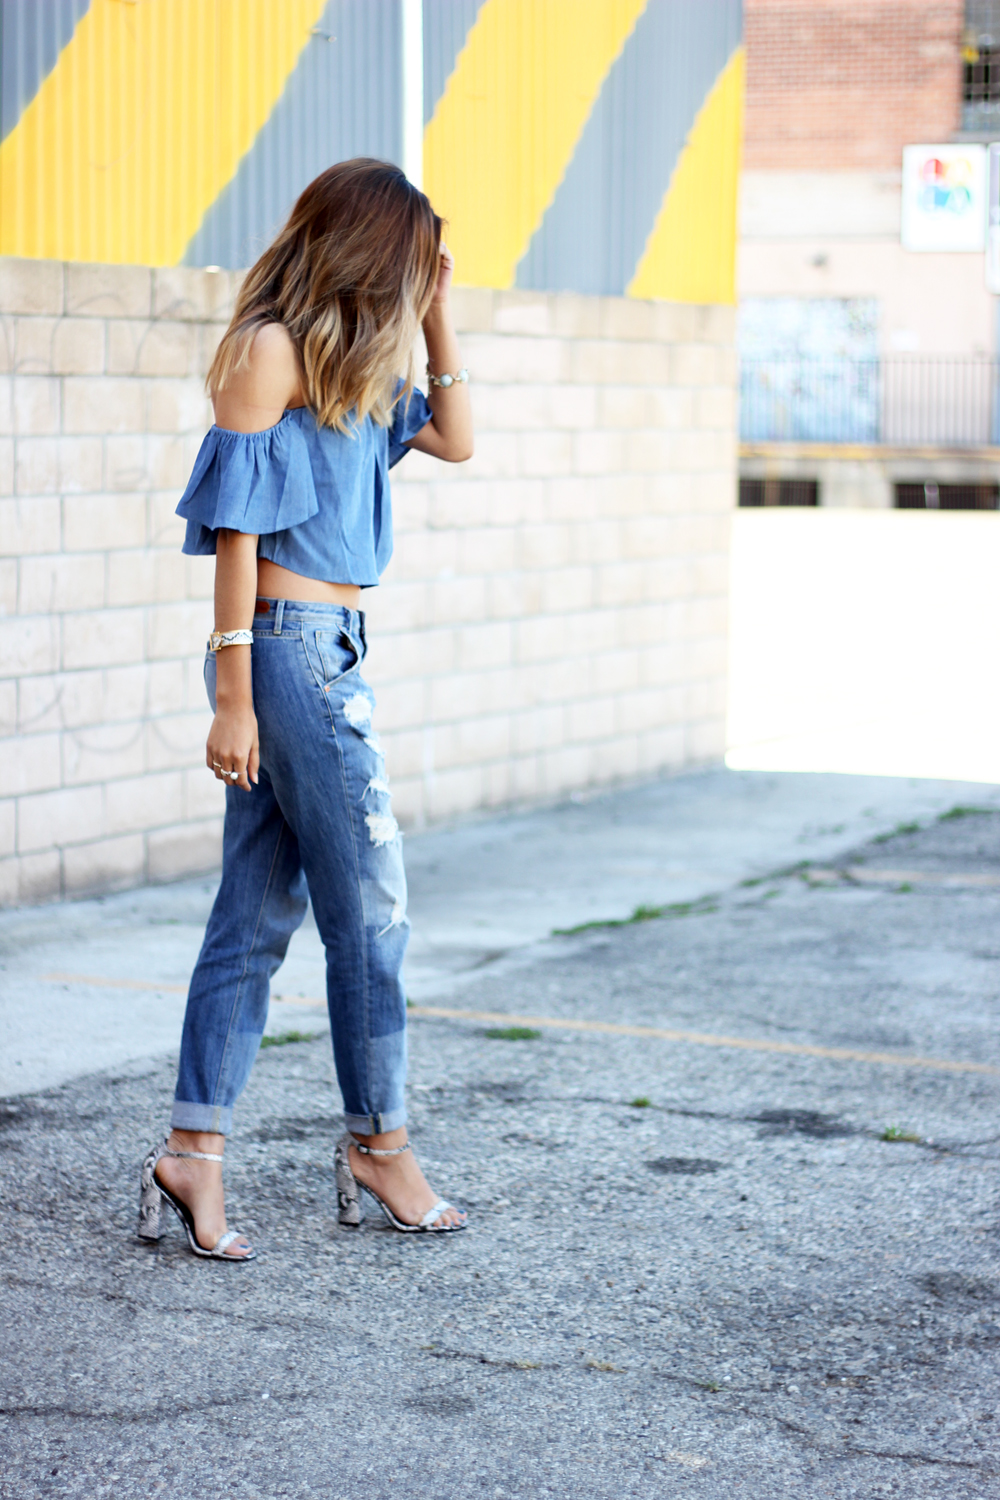 denim day, guess, dittos, melrodstyle, street style, latina blogger, mexican blogger, stylelist, who what wear, denim, jeans, end sexual violence